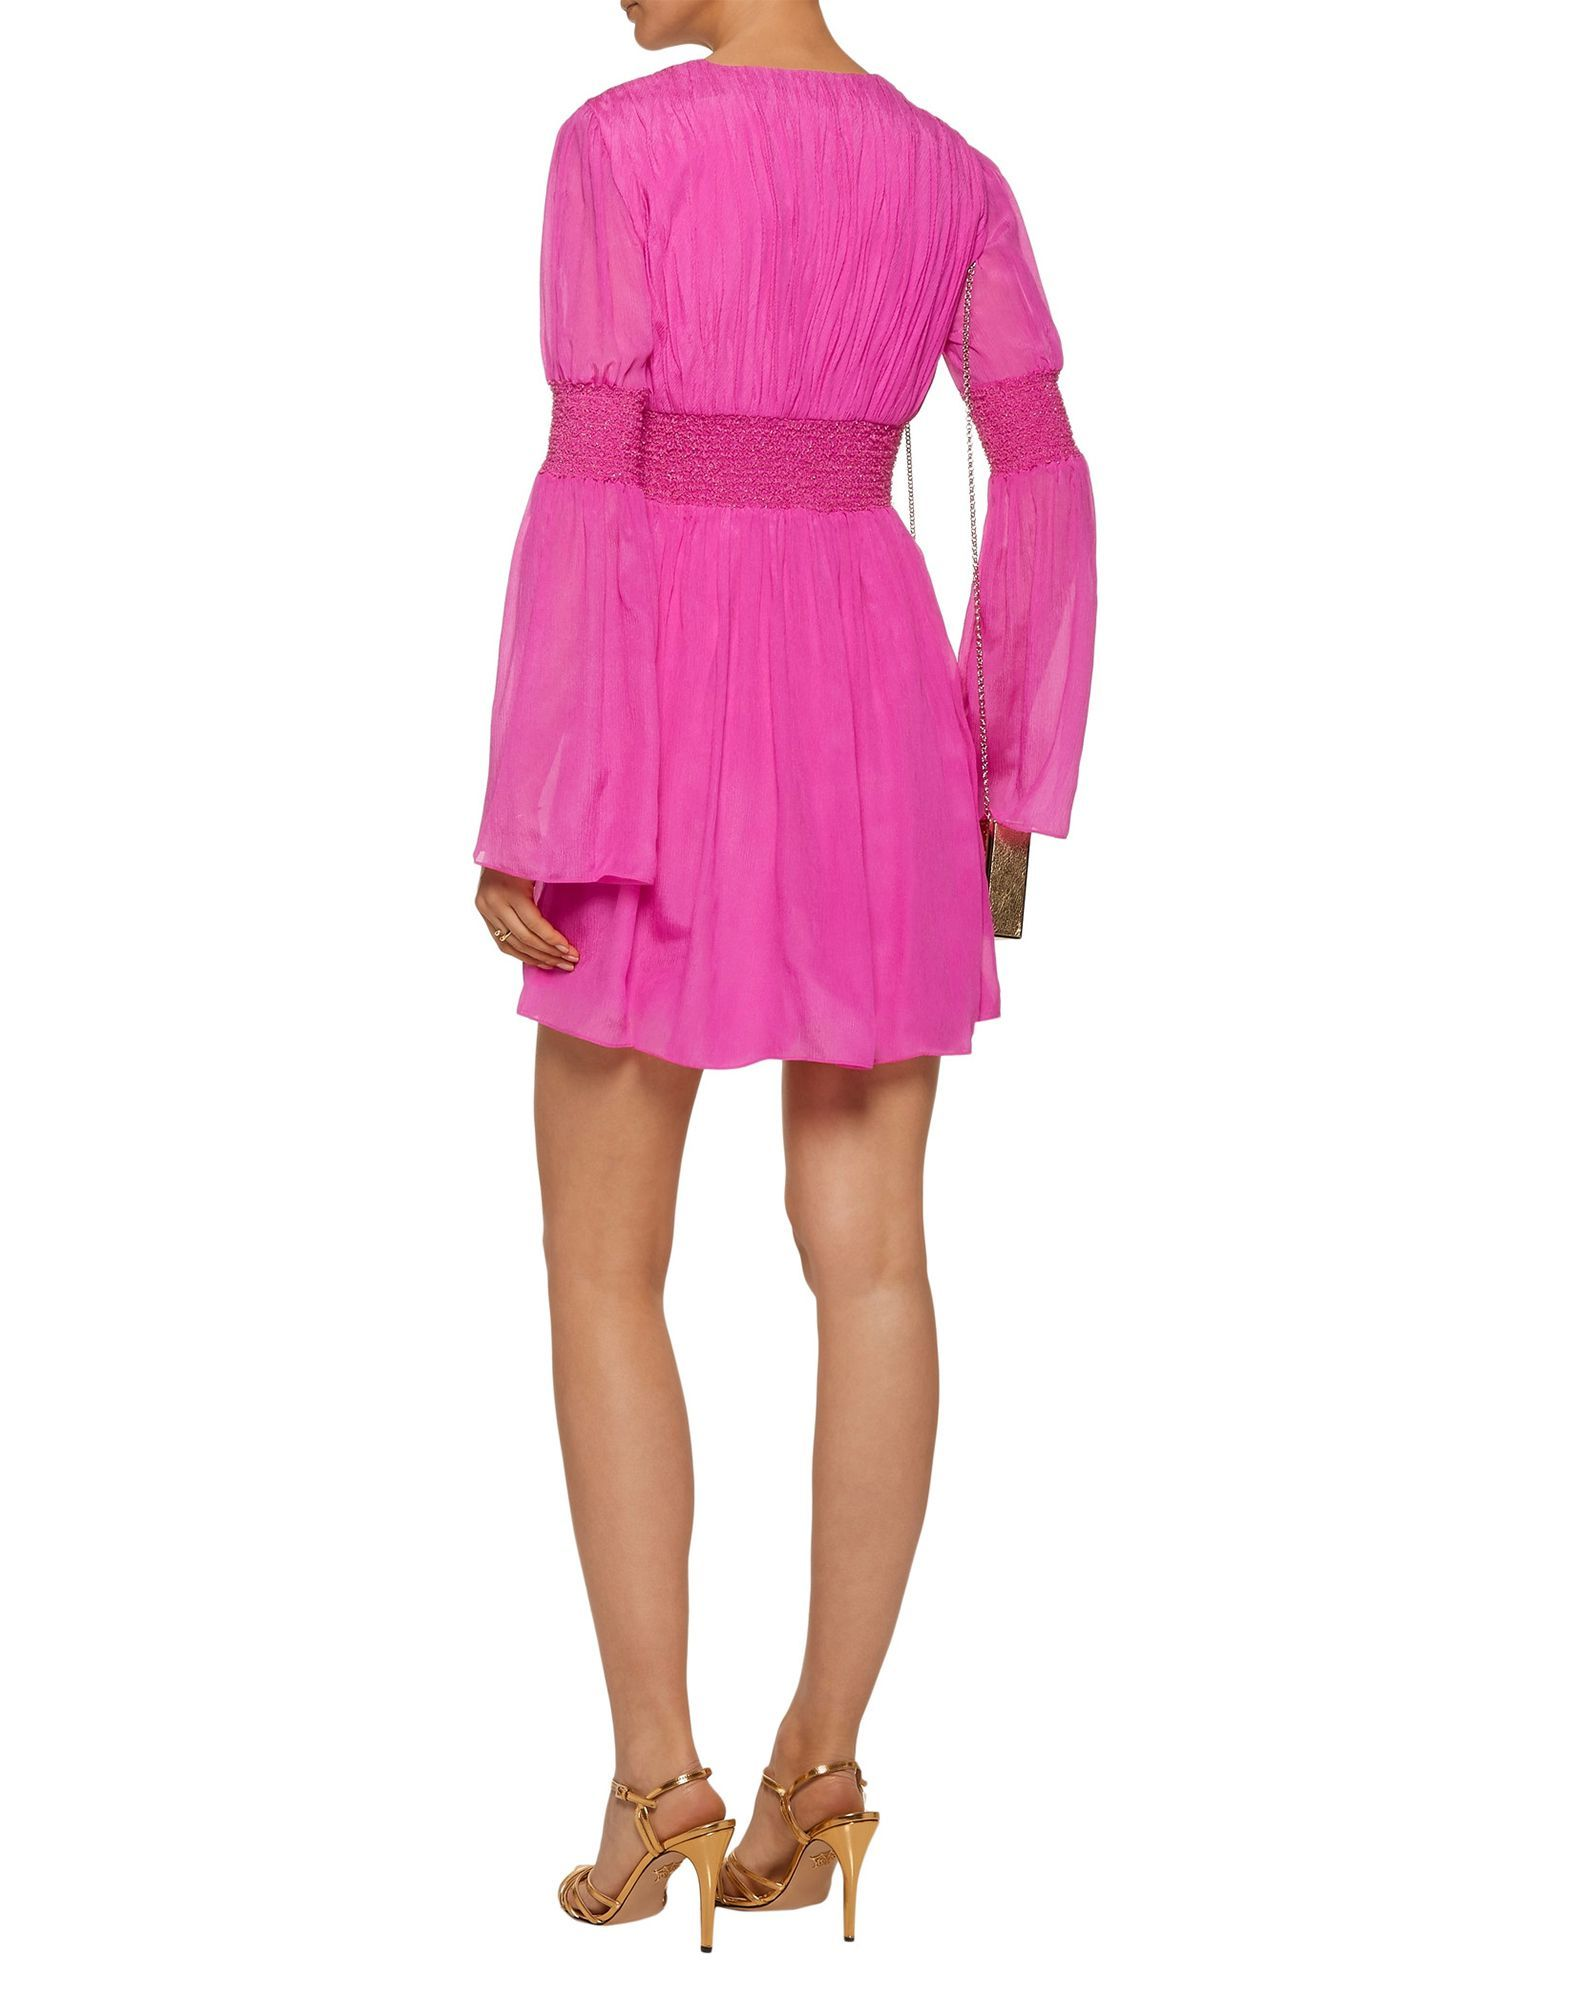 Rachel Zoe Fuchsia Silk Long Sleeve Dress